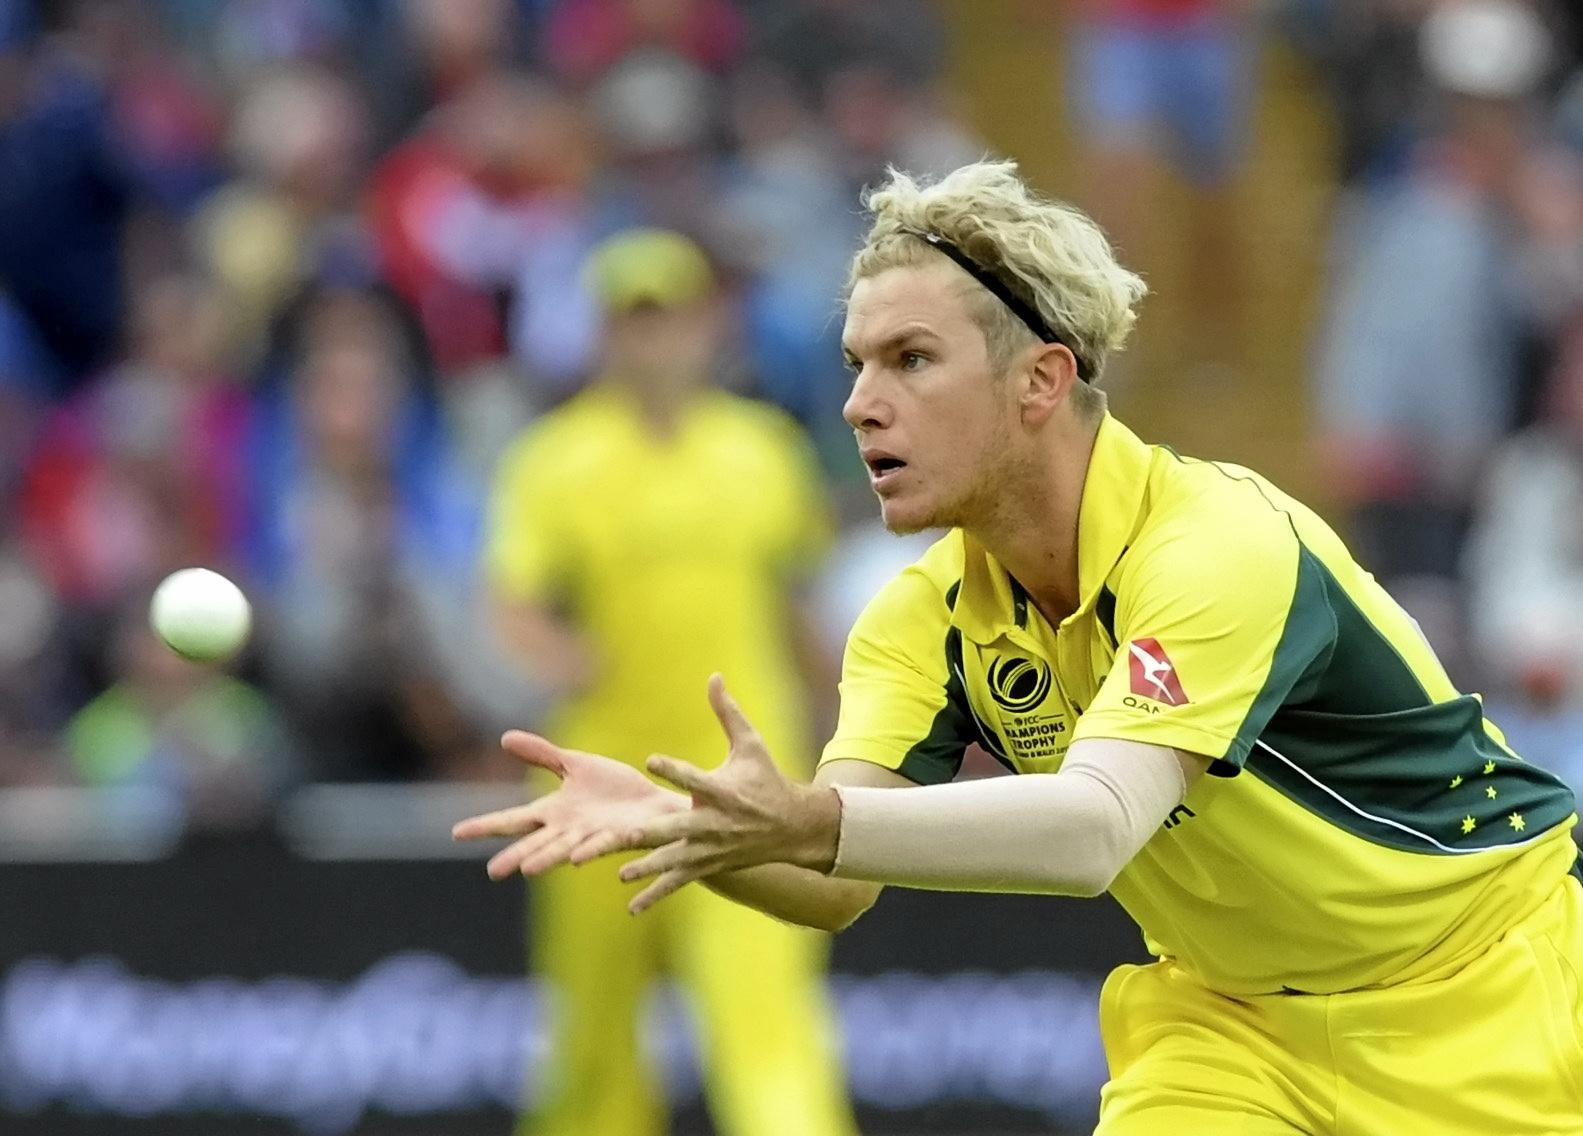 Australia's Adam Zampa is looking forward to game two of the ODI series with India.